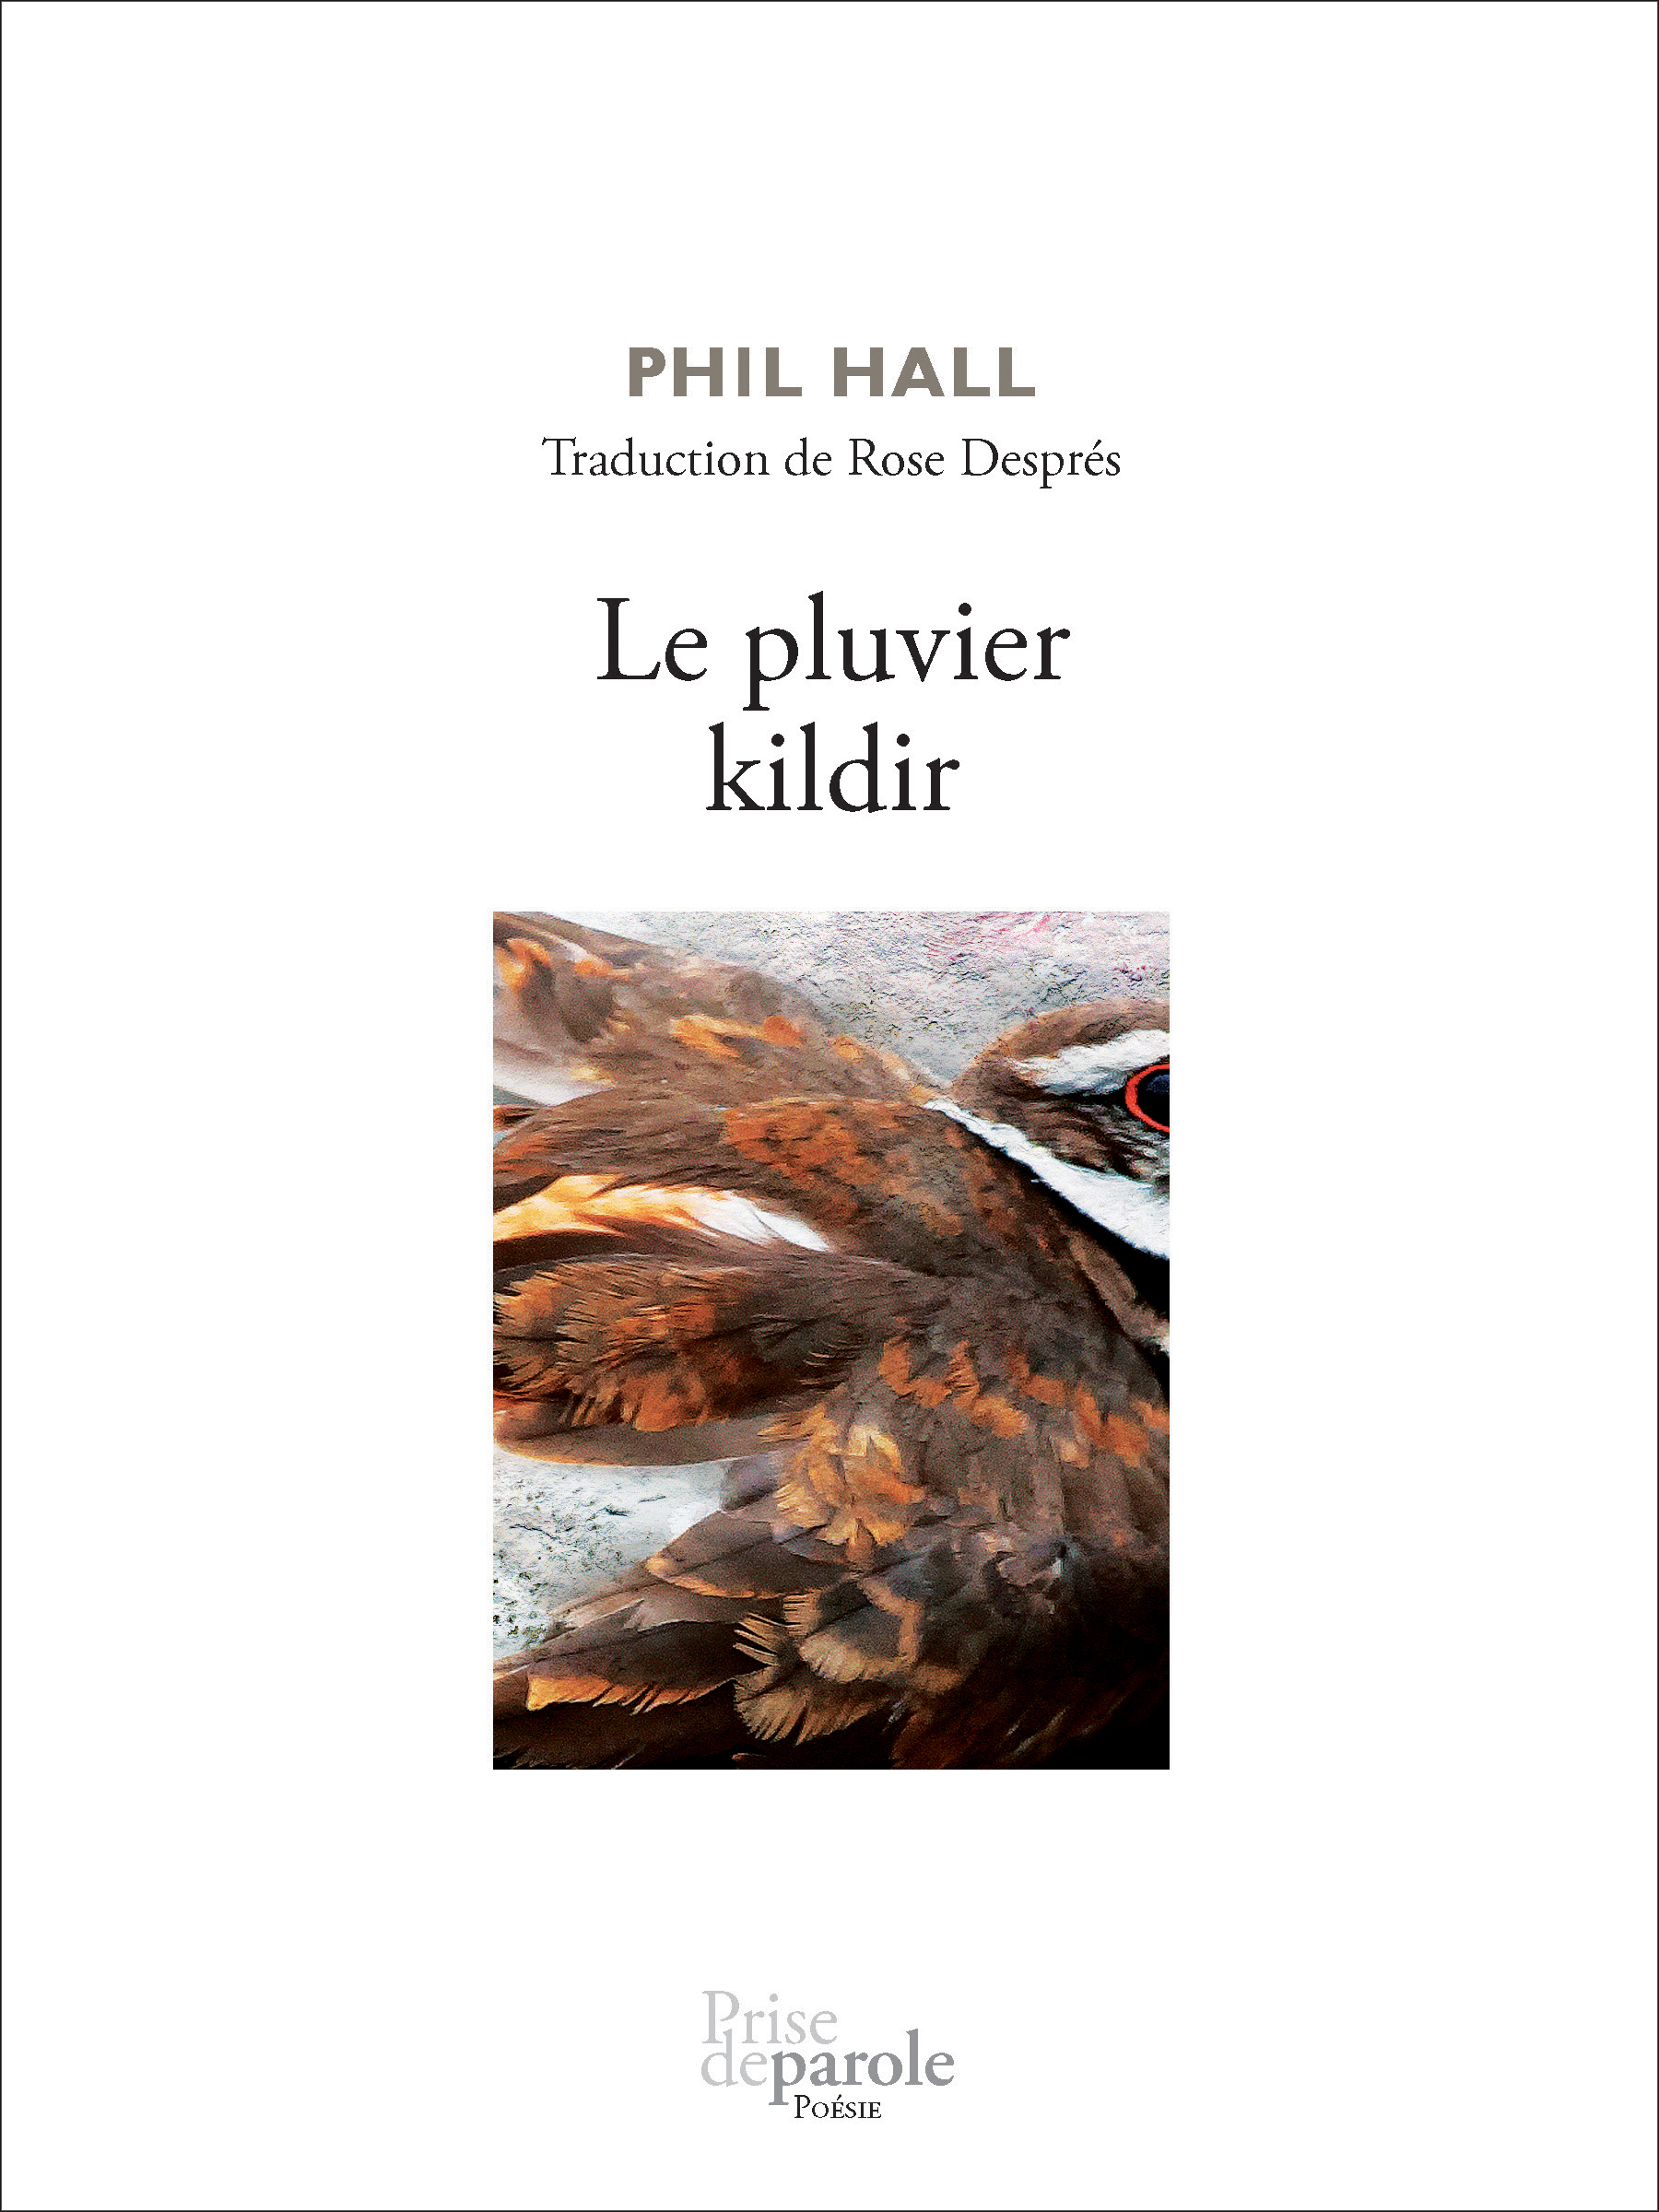 Vignette du livre Le pluvier killdir - Phil Hall